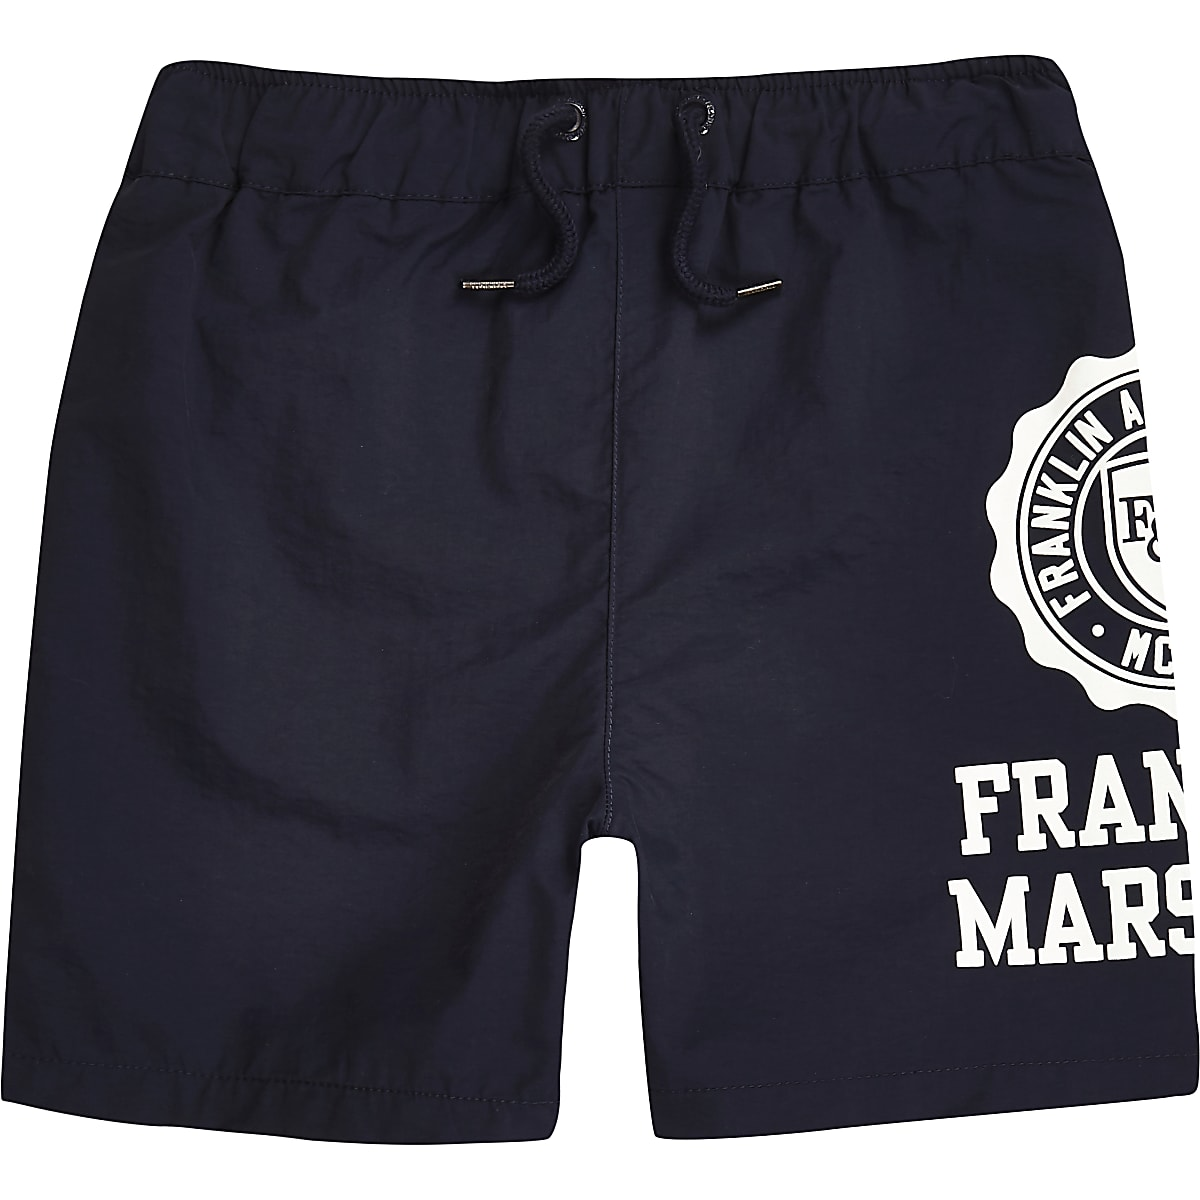 Boys Franklin & Marshall navy swim shorts